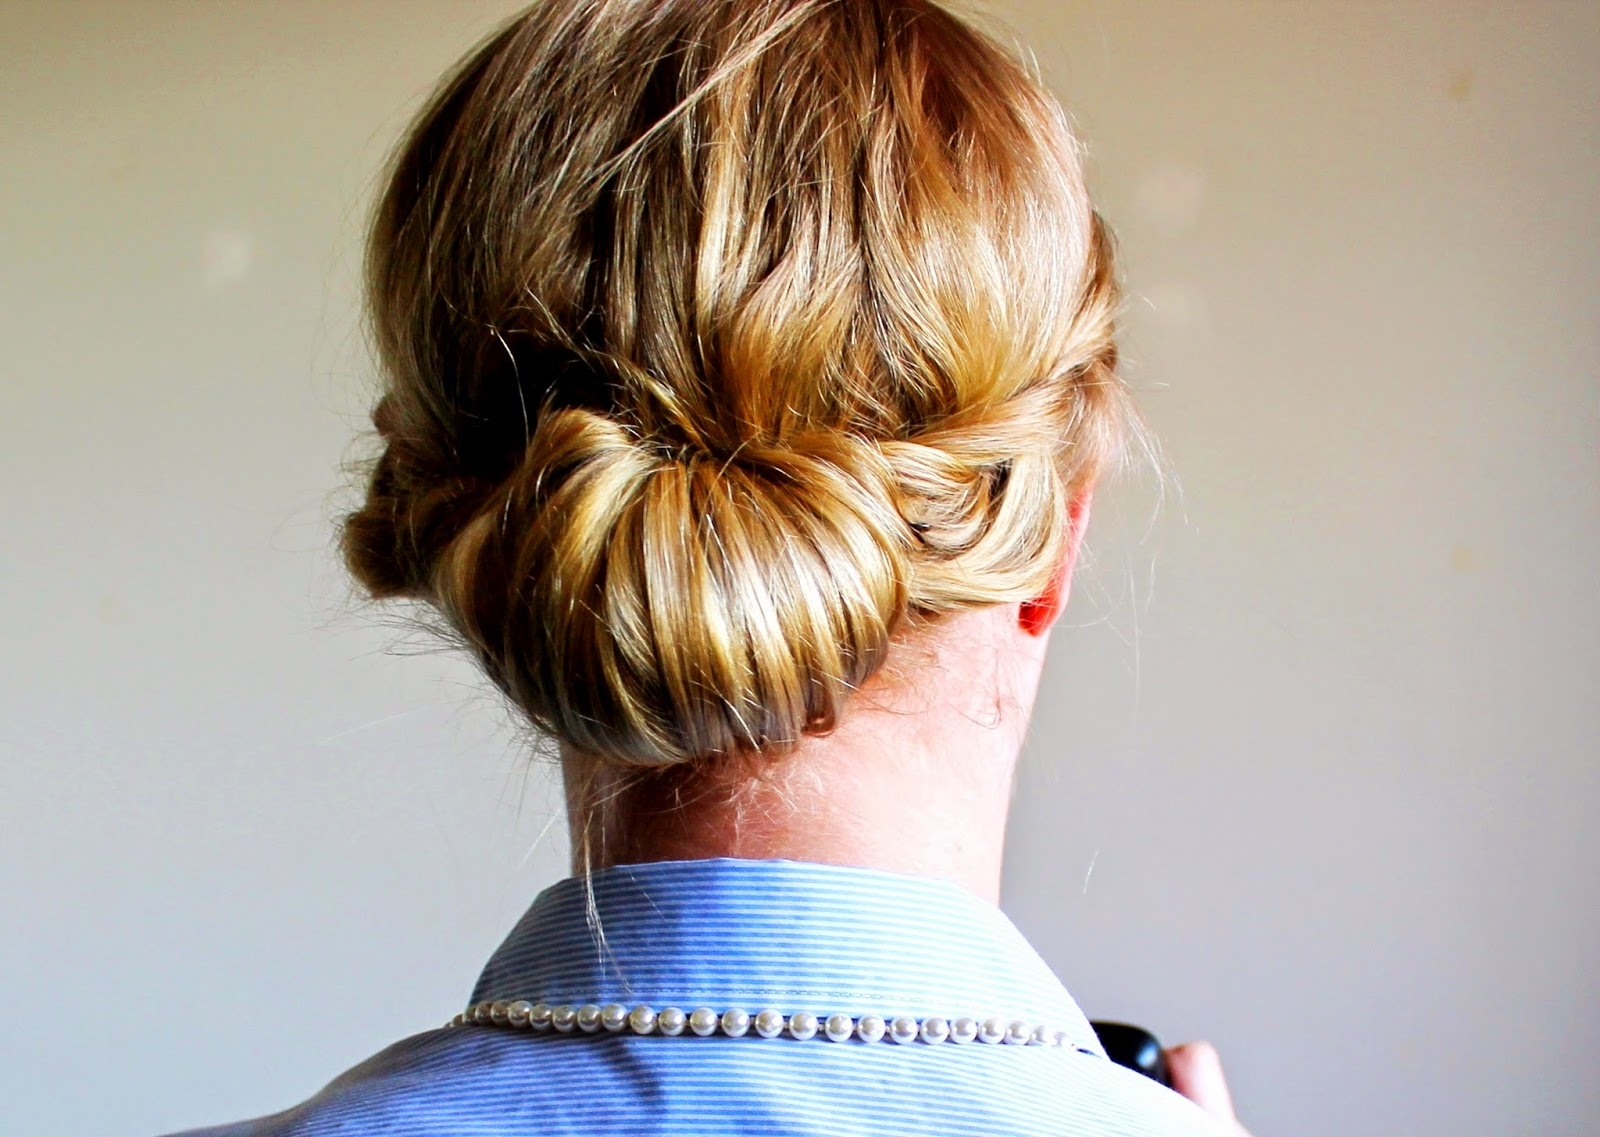 Game of thrones braid and updo from back | Alinan kotona blog